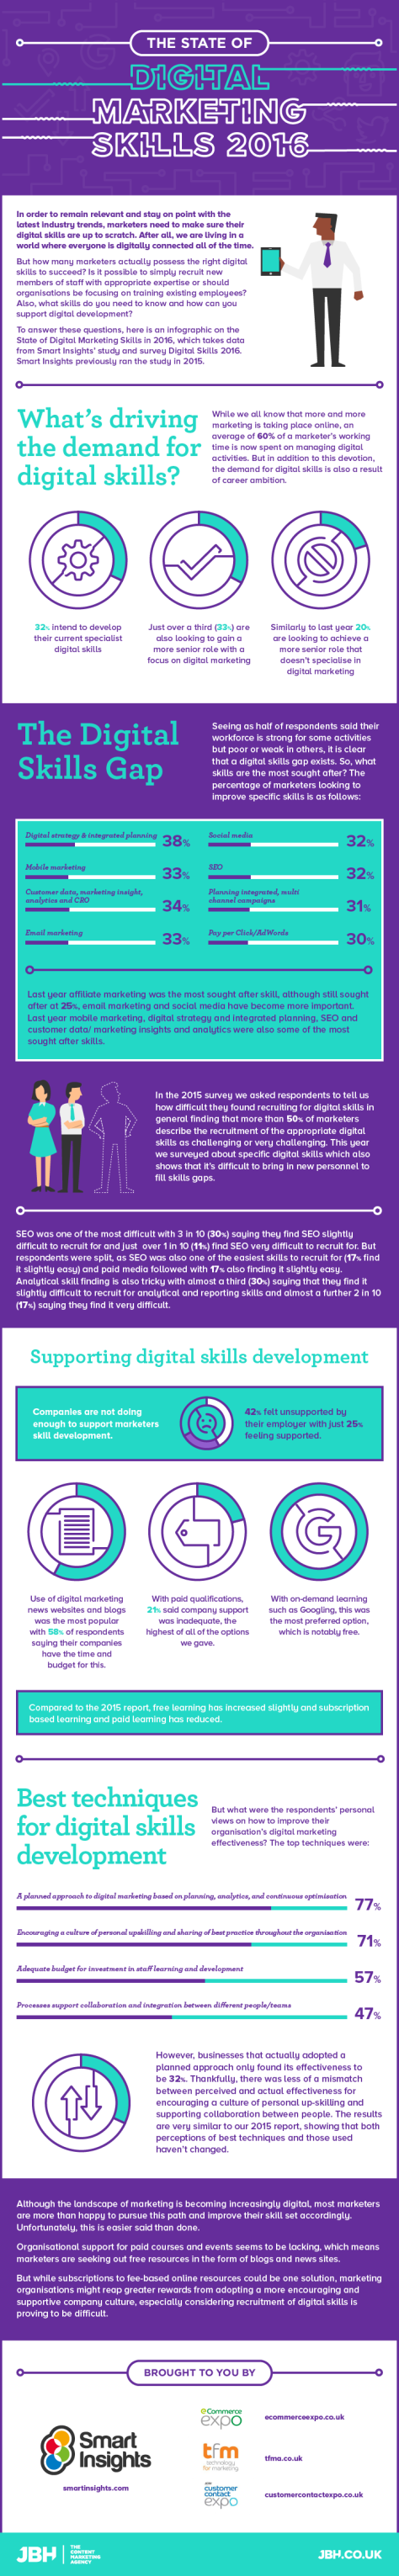 digital-skills-infographic-state-of-digital-marketing-skills-2016